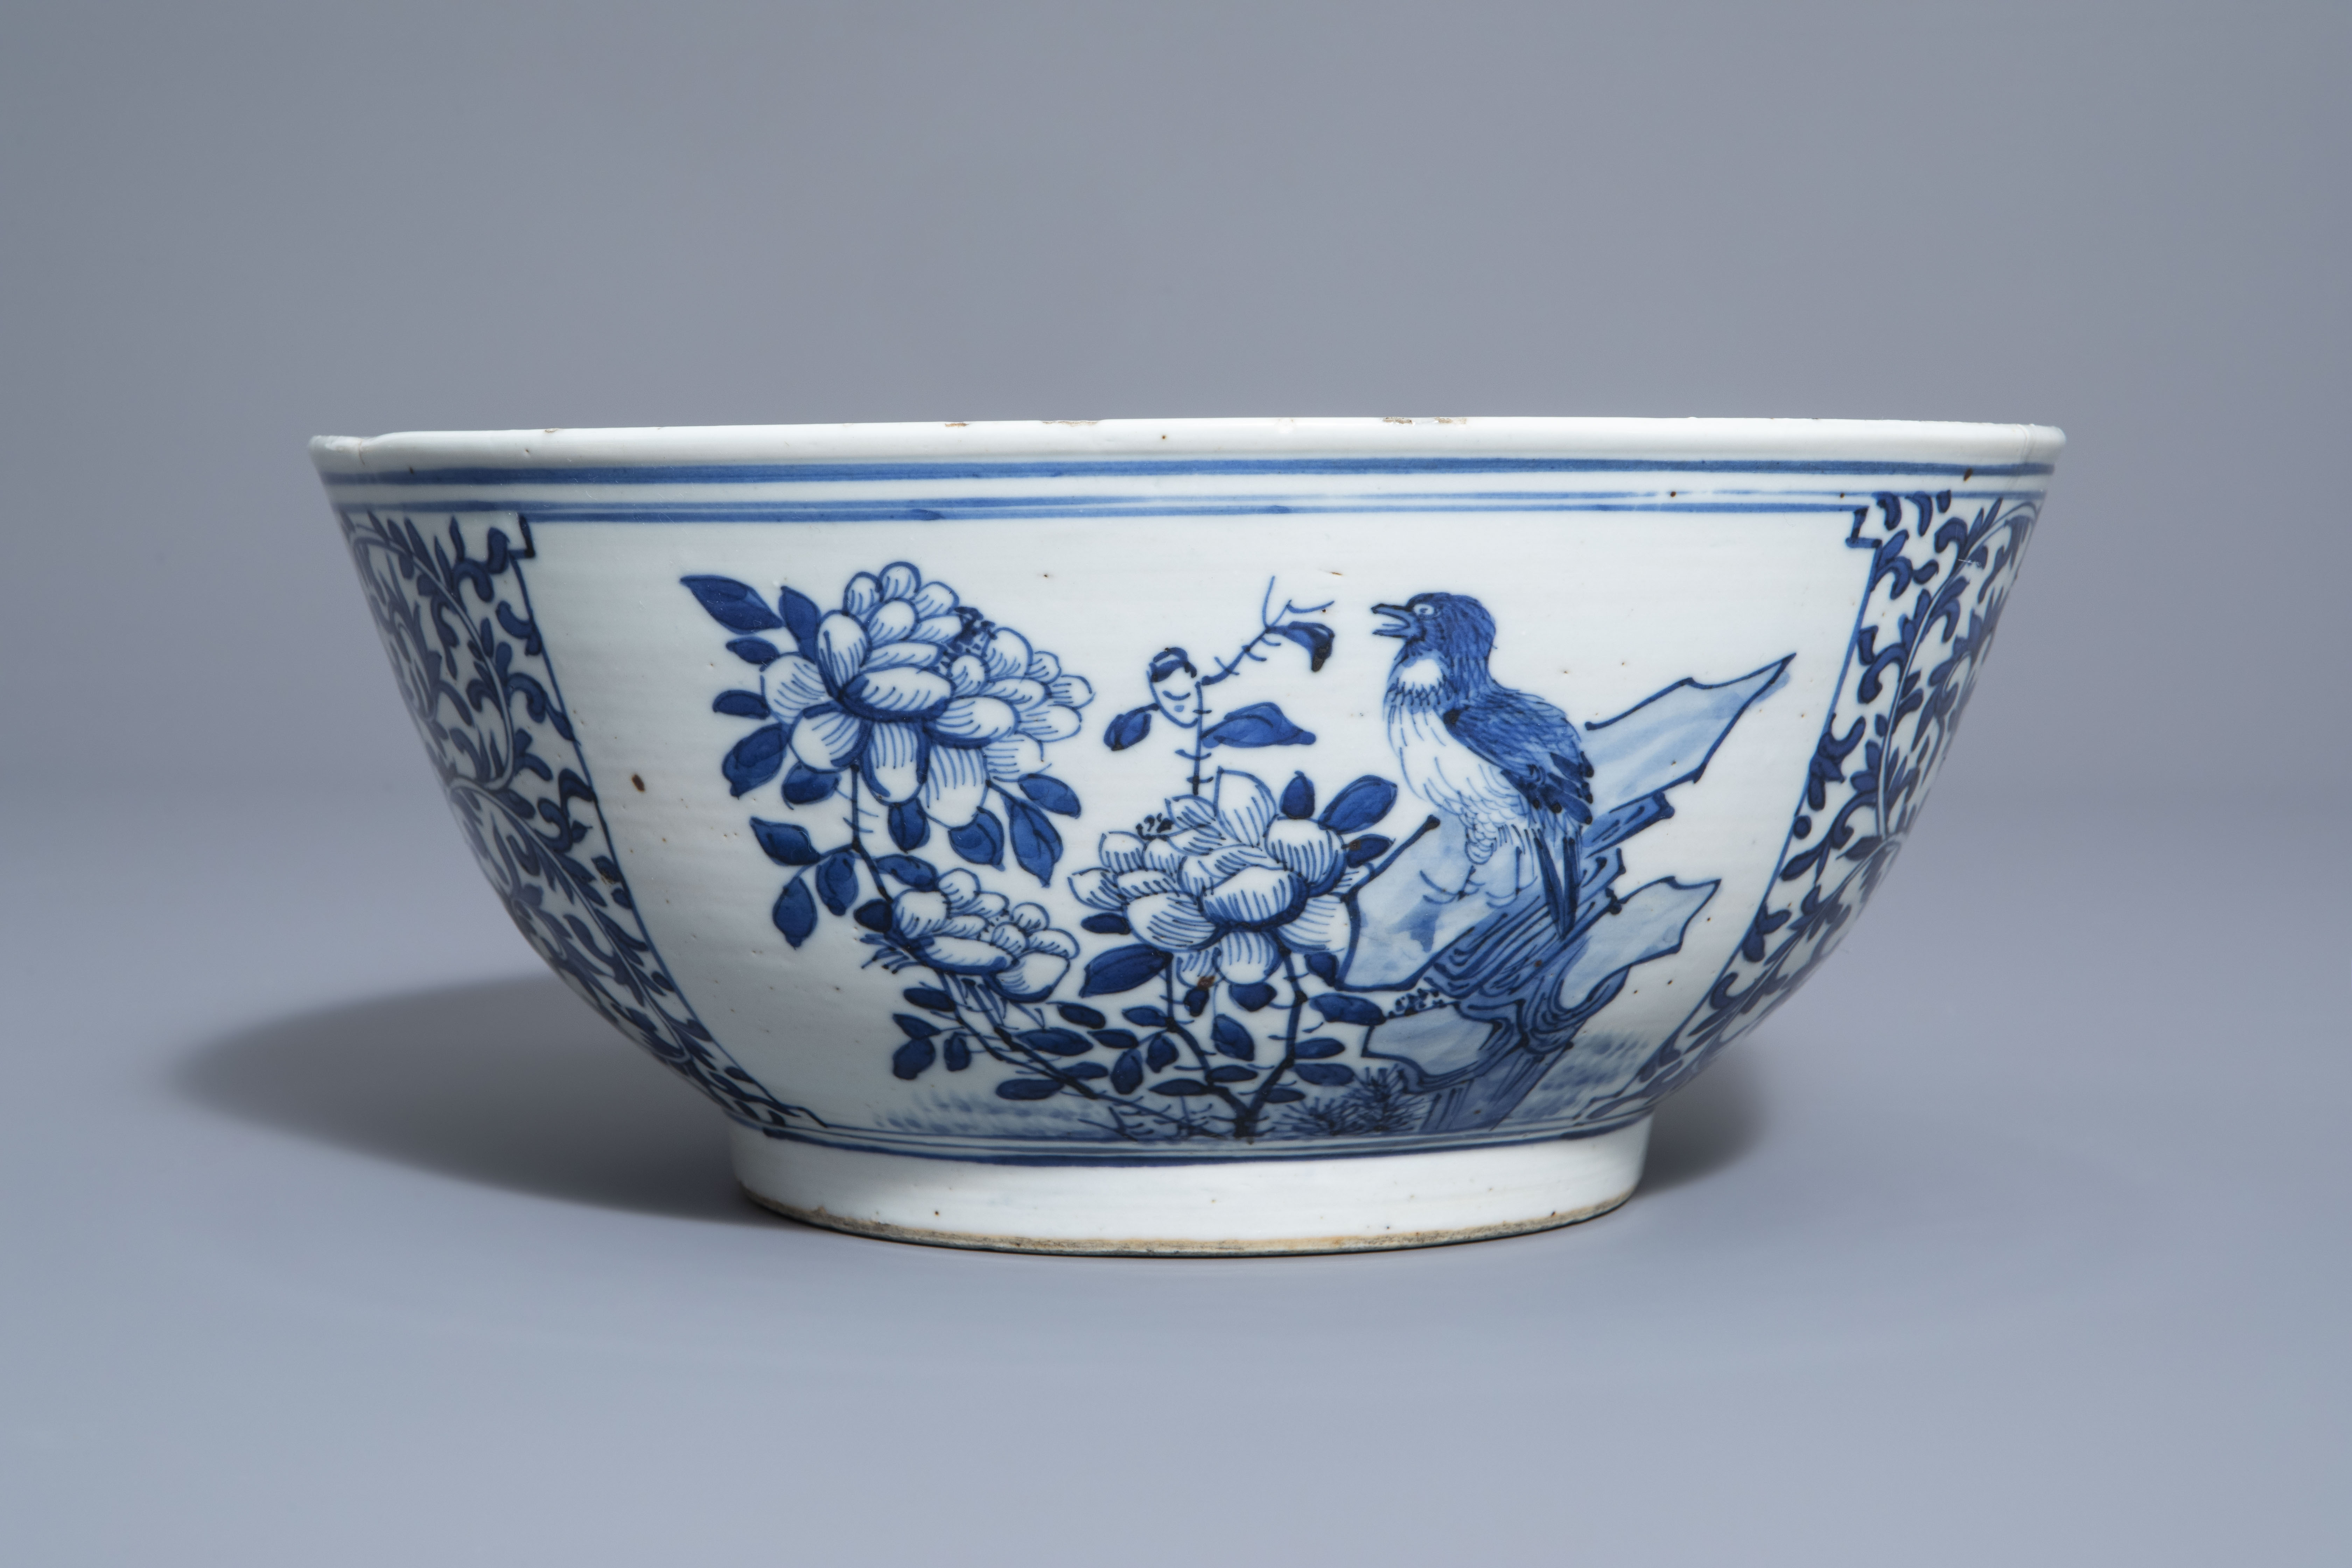 A Chinese blue and white bowl with birds and flowers, 19th C. - Image 2 of 7